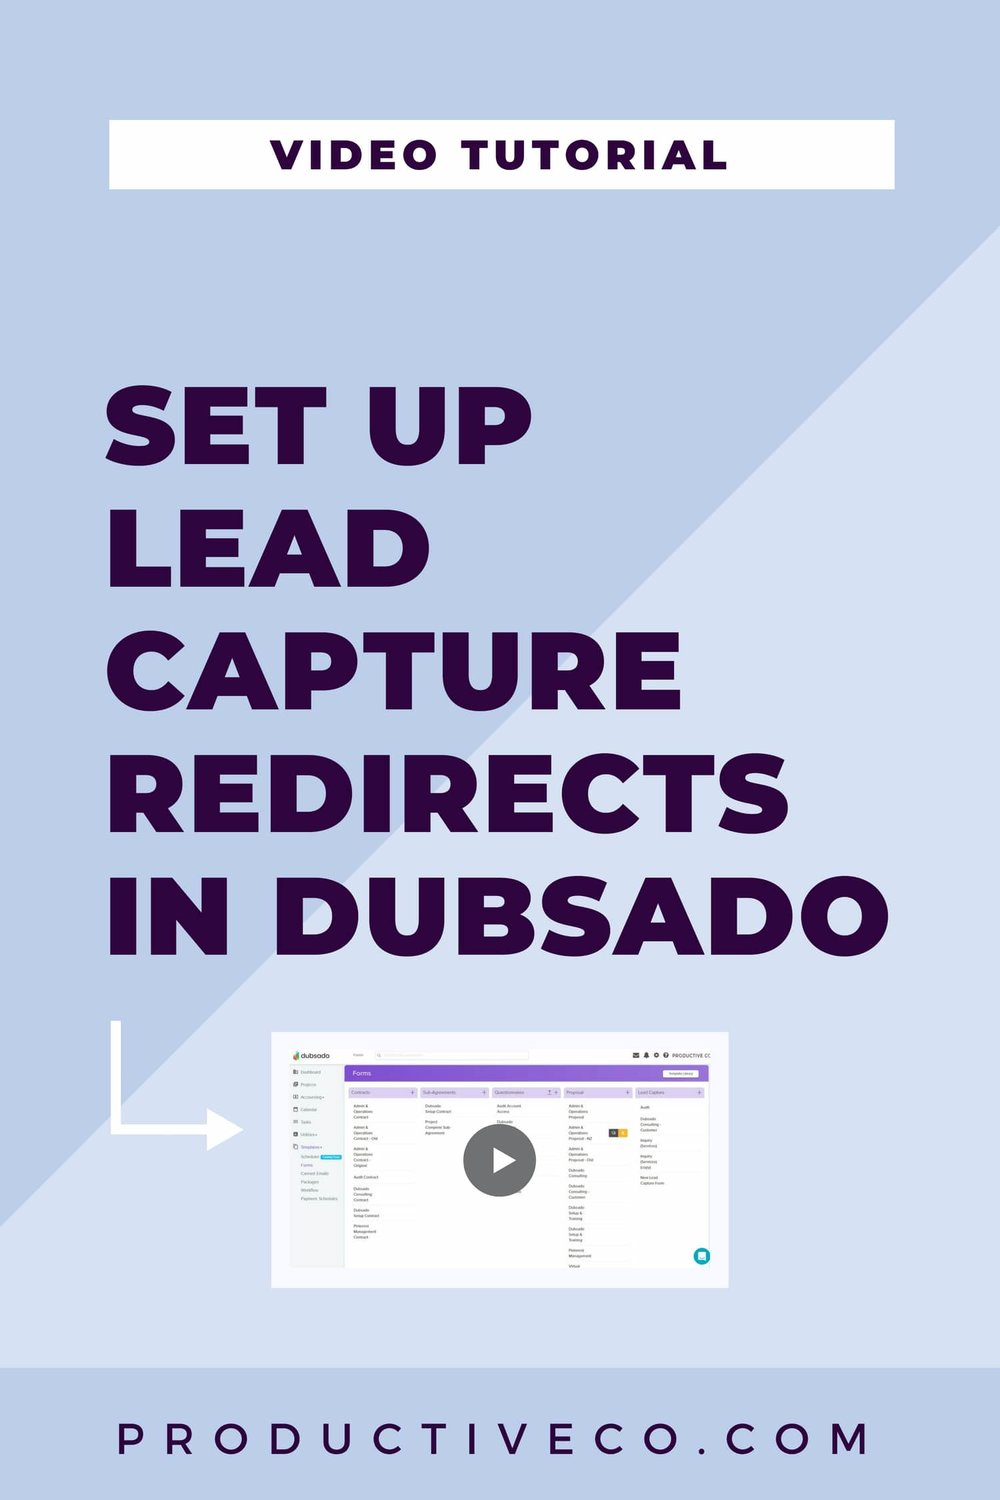 Send your leads to a custom page once they fill out your Dubsado lead capture (contact form). Show off your branding by re-directing to the URL of your choice.